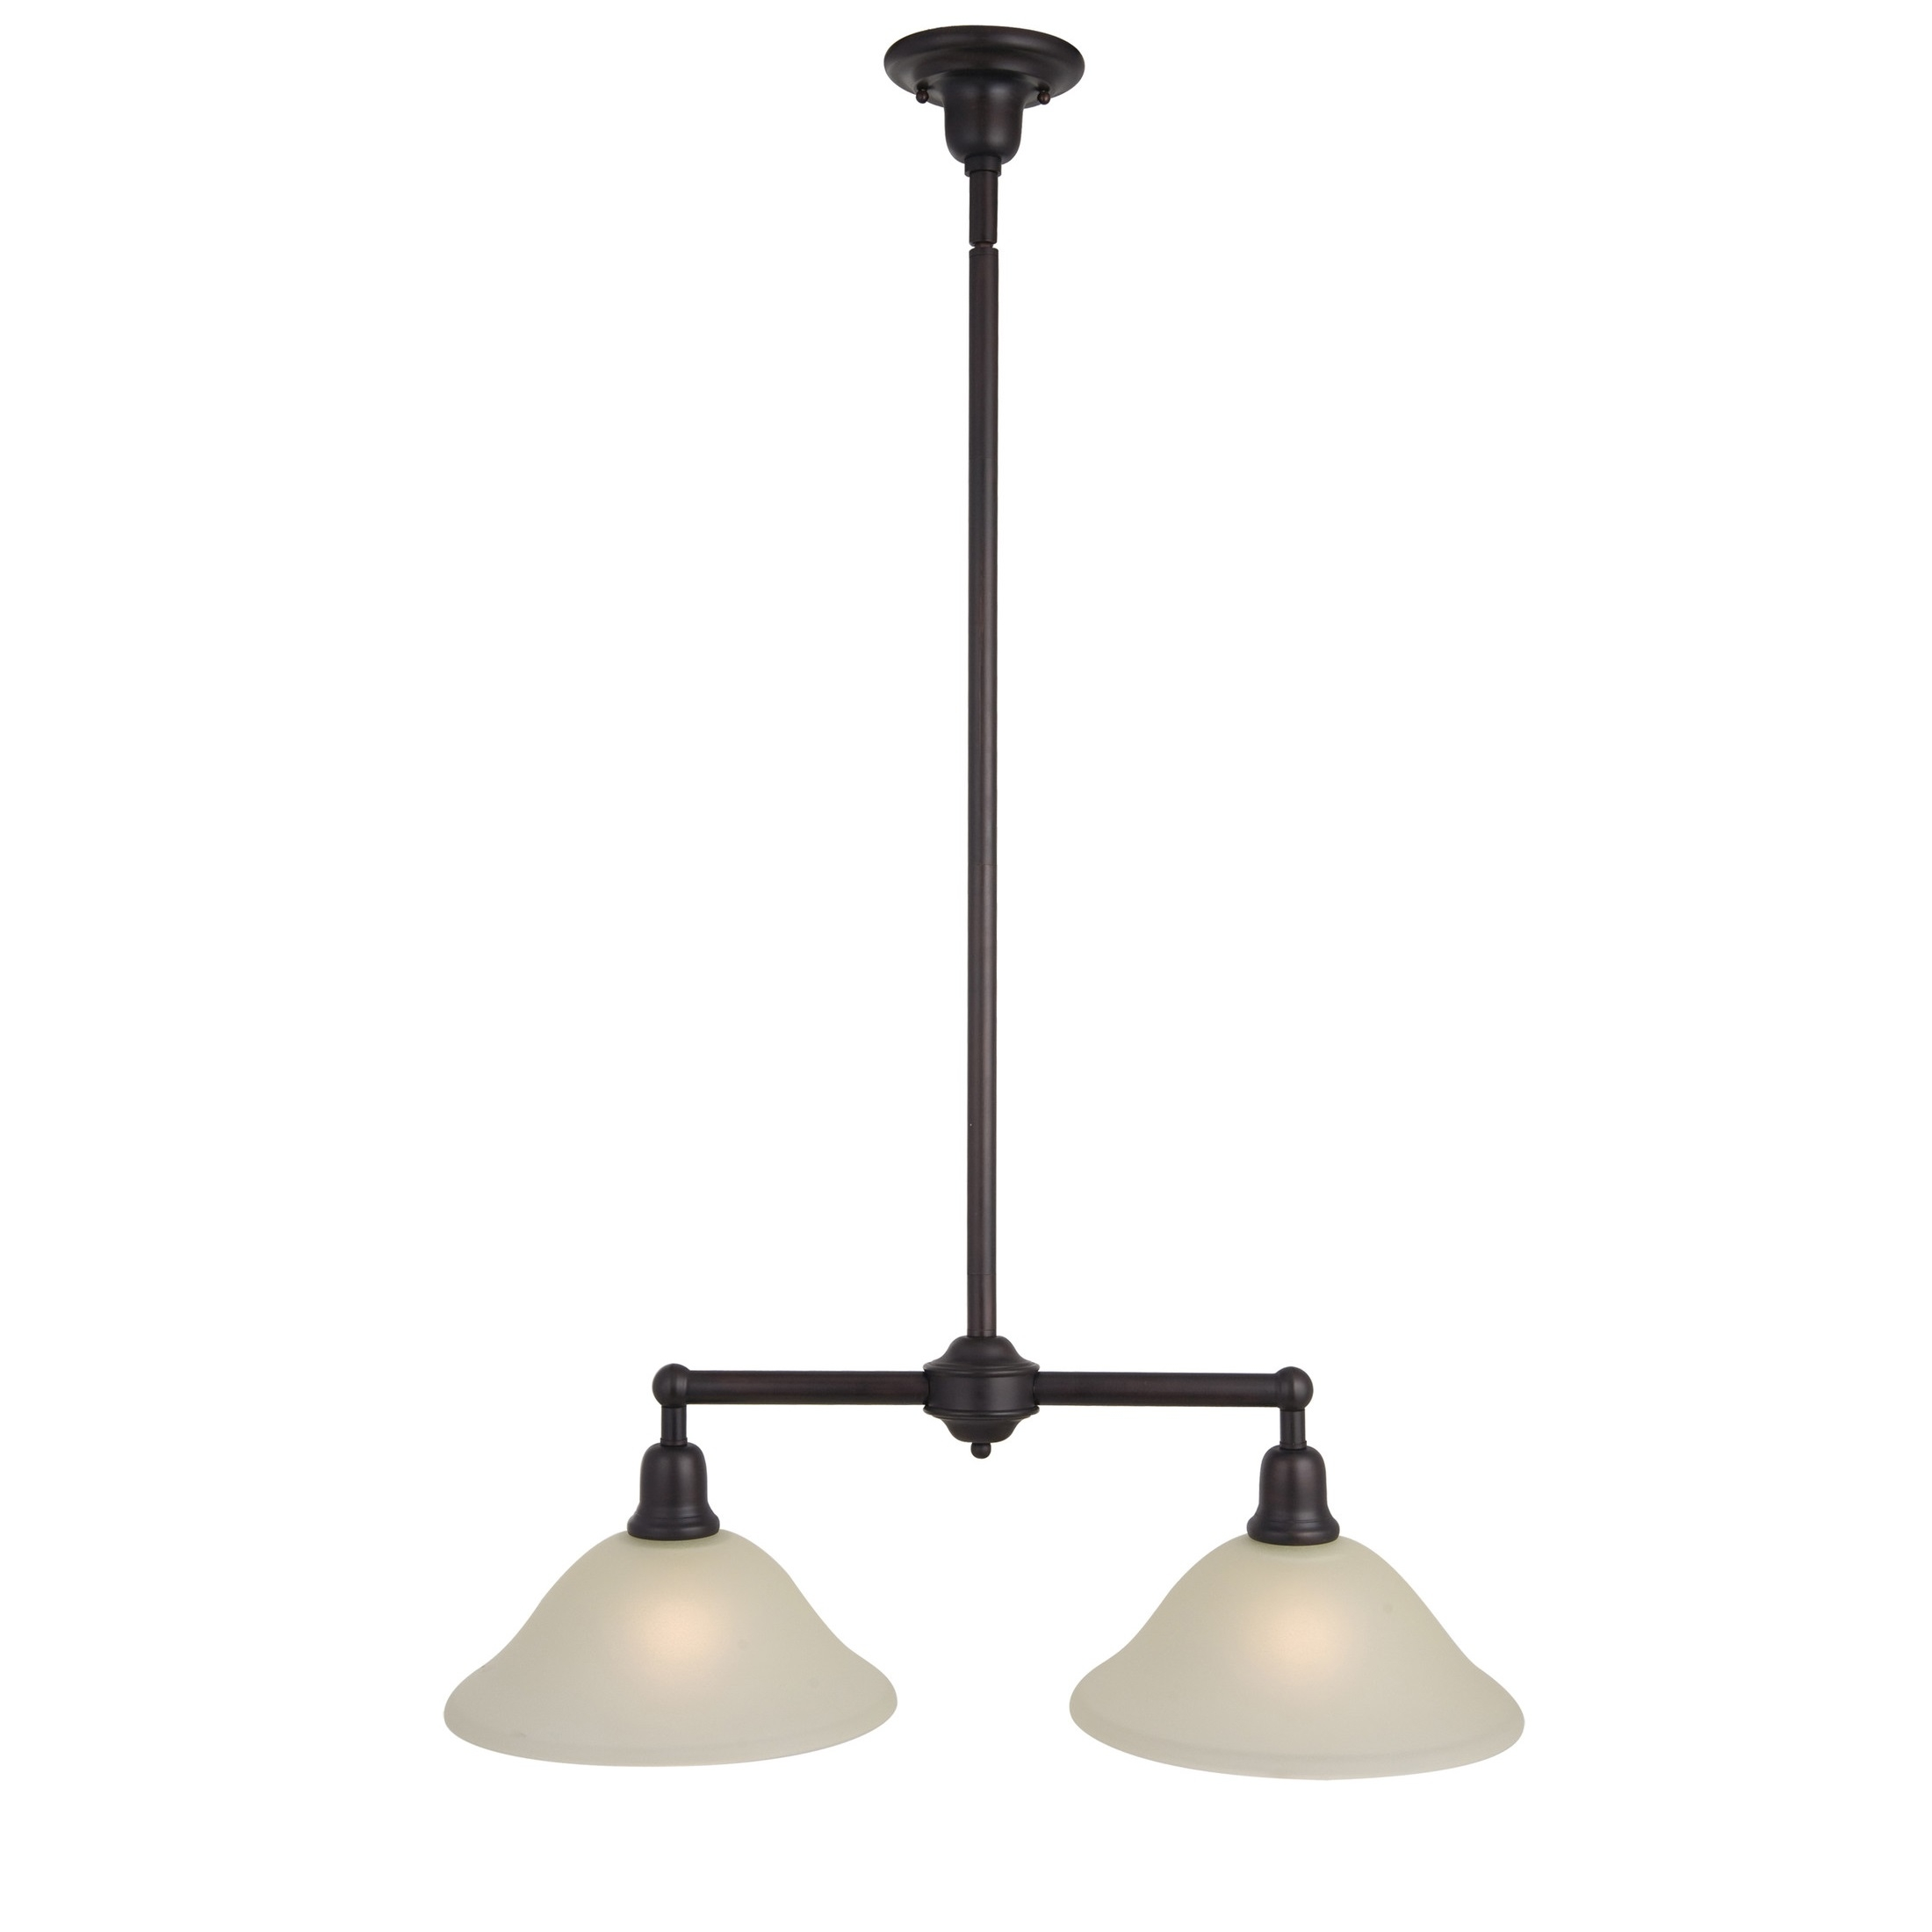 oil rubbed bronze kitchen island lighting large with seating maxim 2 lights bel air pendant in